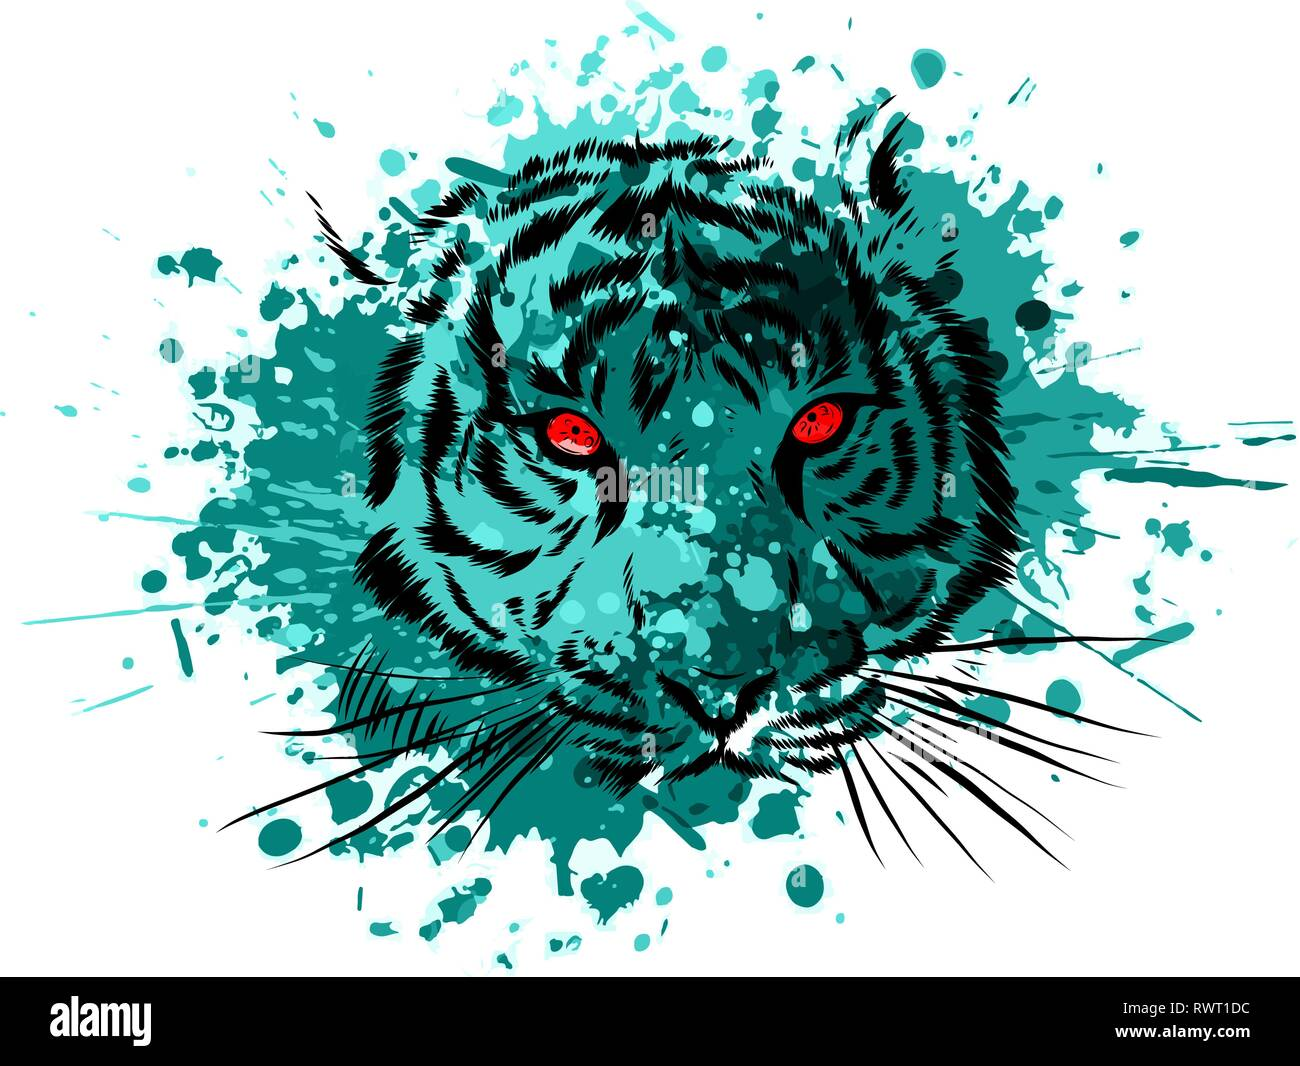 Tiger Eyes Mascot Graphic in white background - Stock Vector